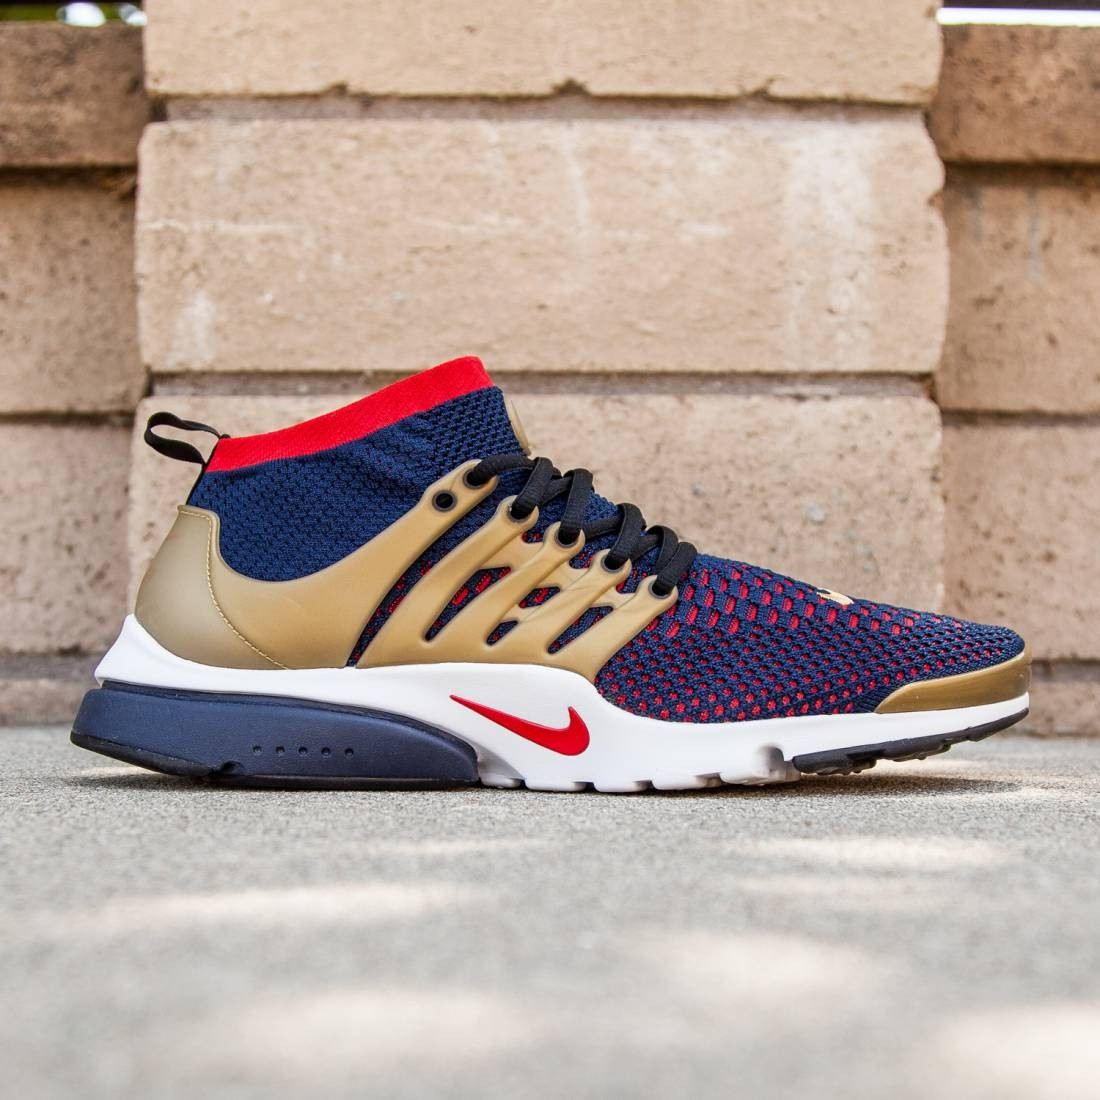 Nike Men Nike Air Presto Ultra Flyknit Chaussure (college navy / comet